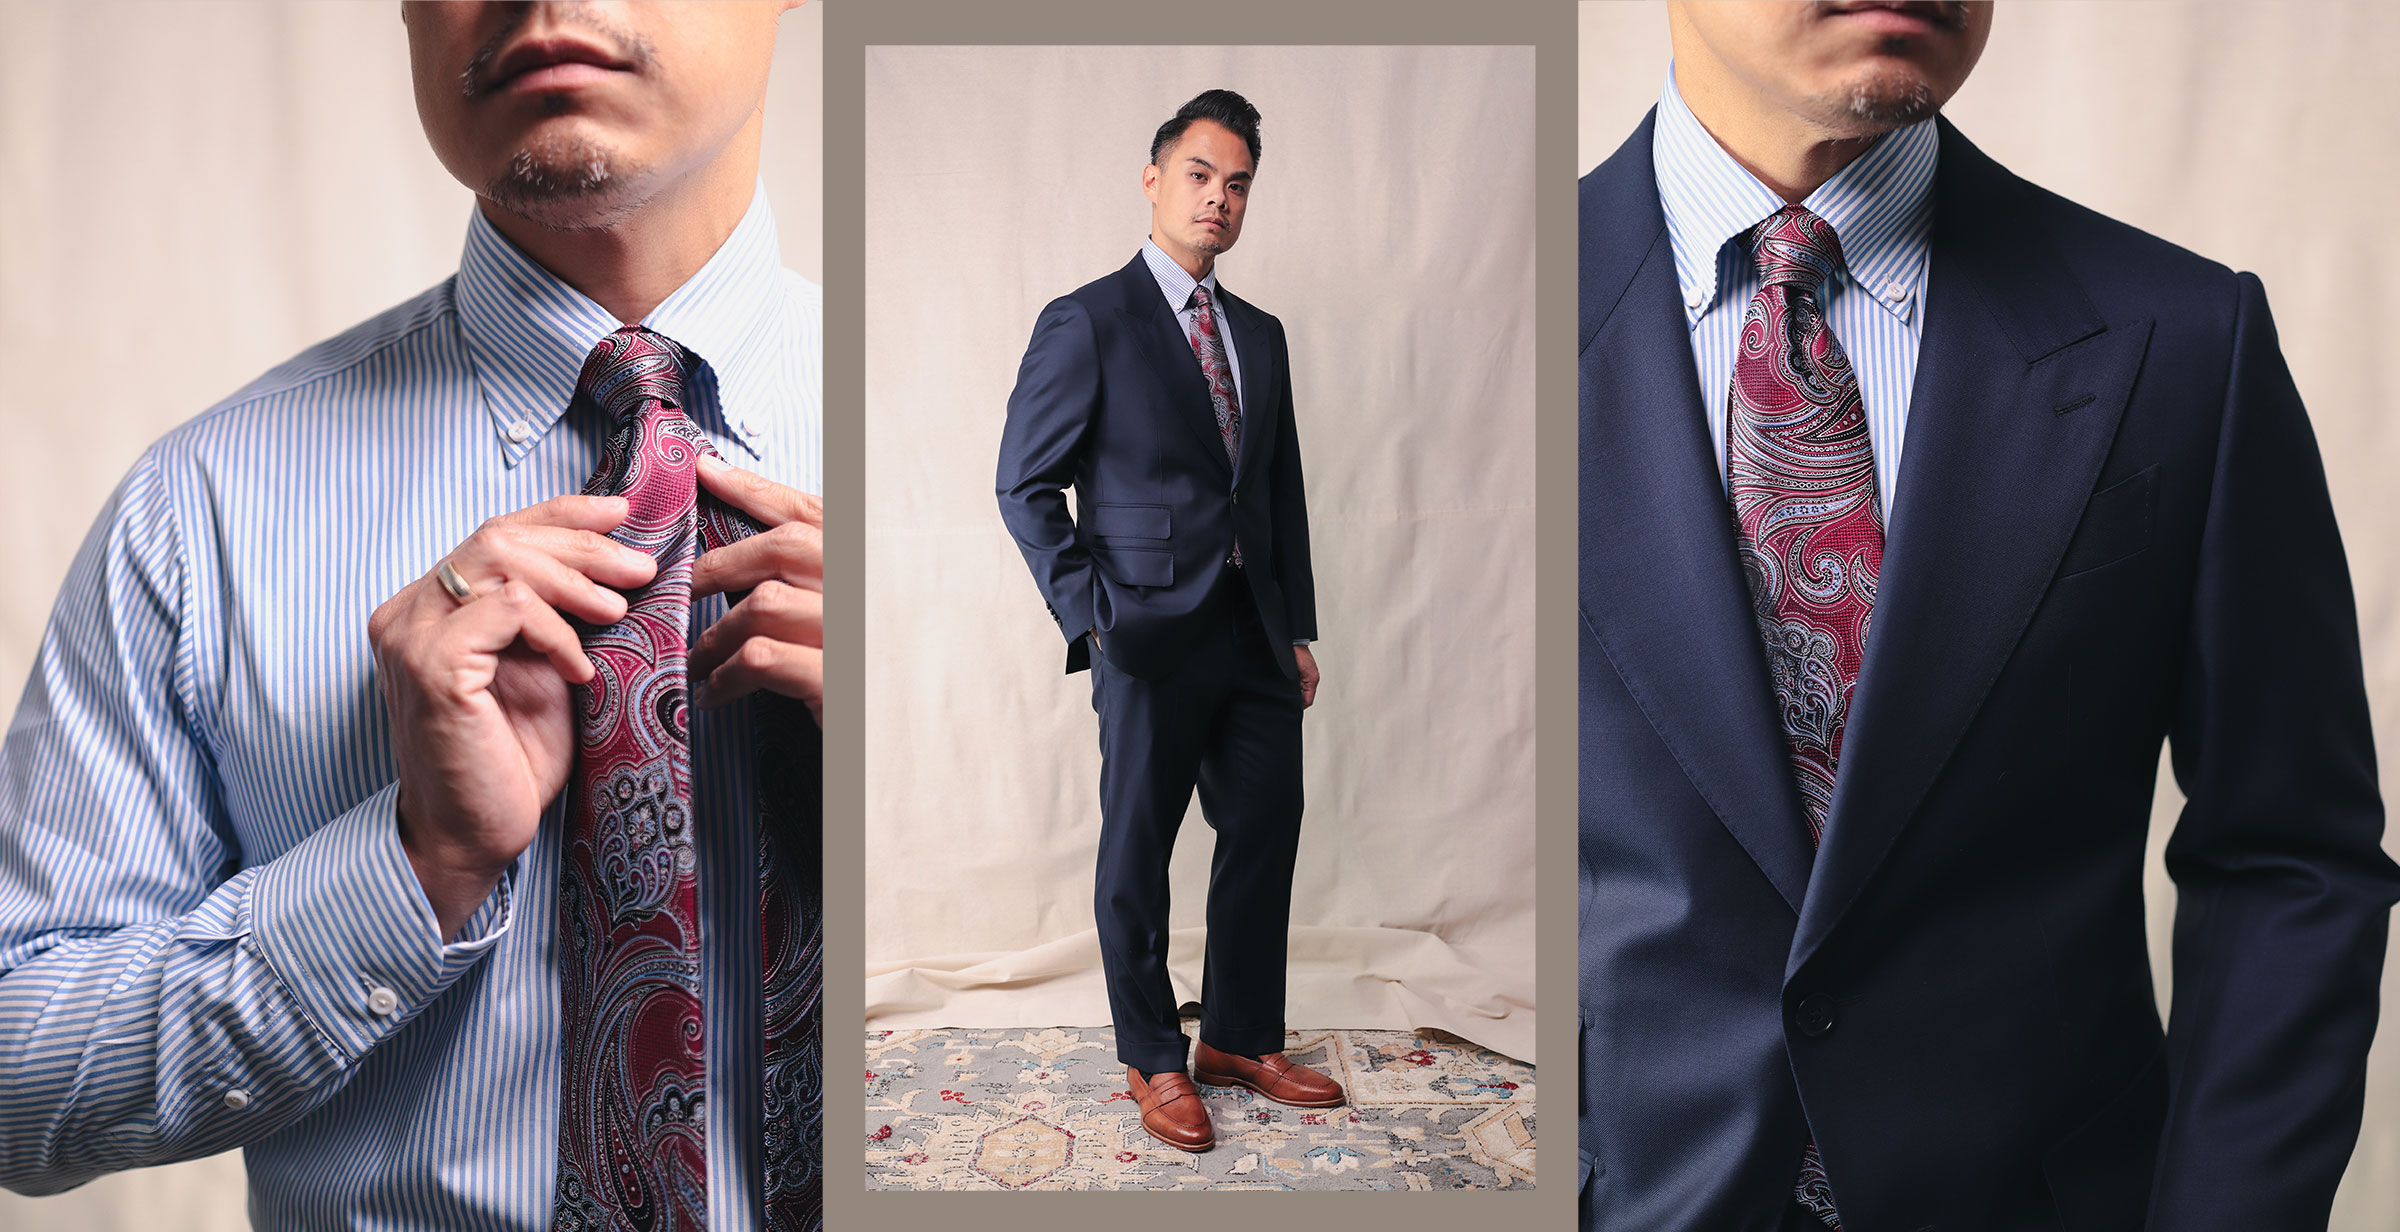 Spier & Mackay Guabello suit shirt and tie details